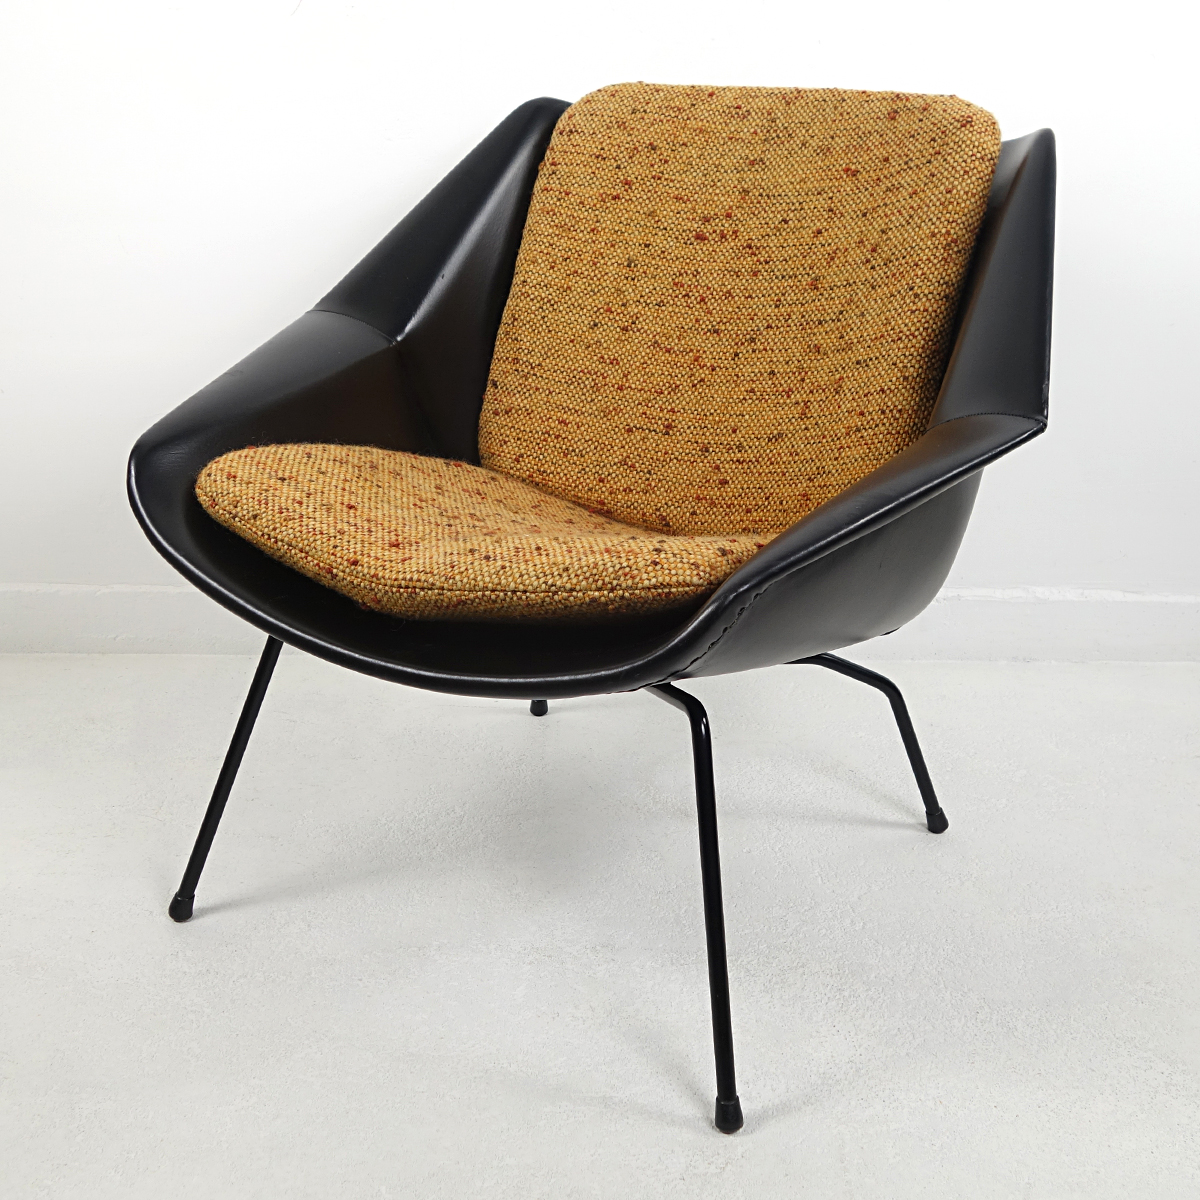 Mid Century Modern Chair Fm08 With Loose Cushions By Cees Braakman For Pastoe Doctor Decorum